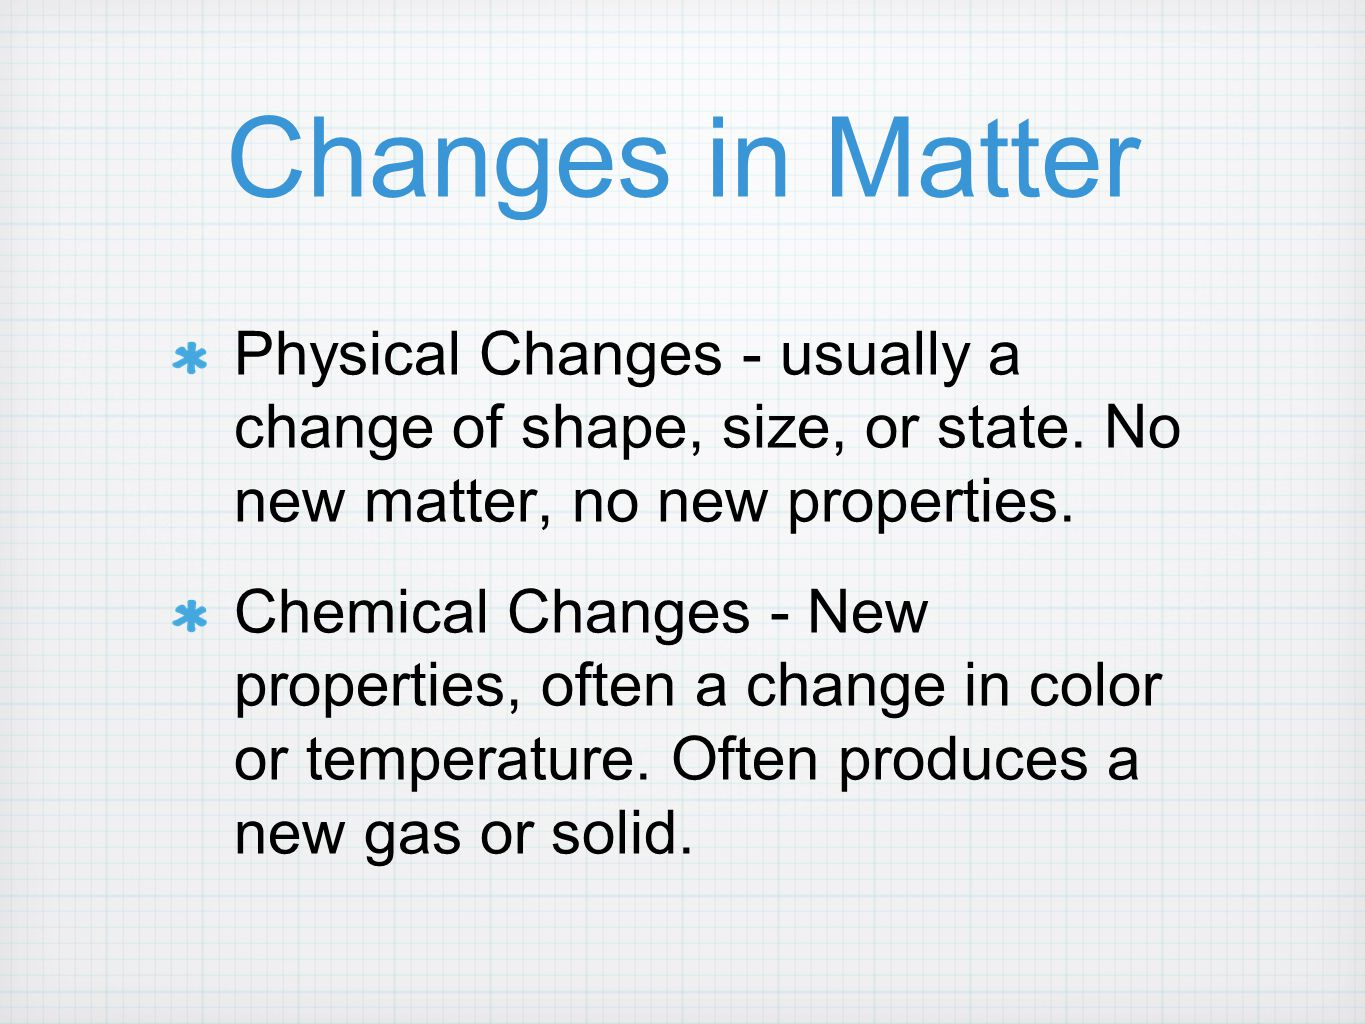 Changes in Matter Physical Changes - usually a change of shape, size, or state. No new matter, no new properties.